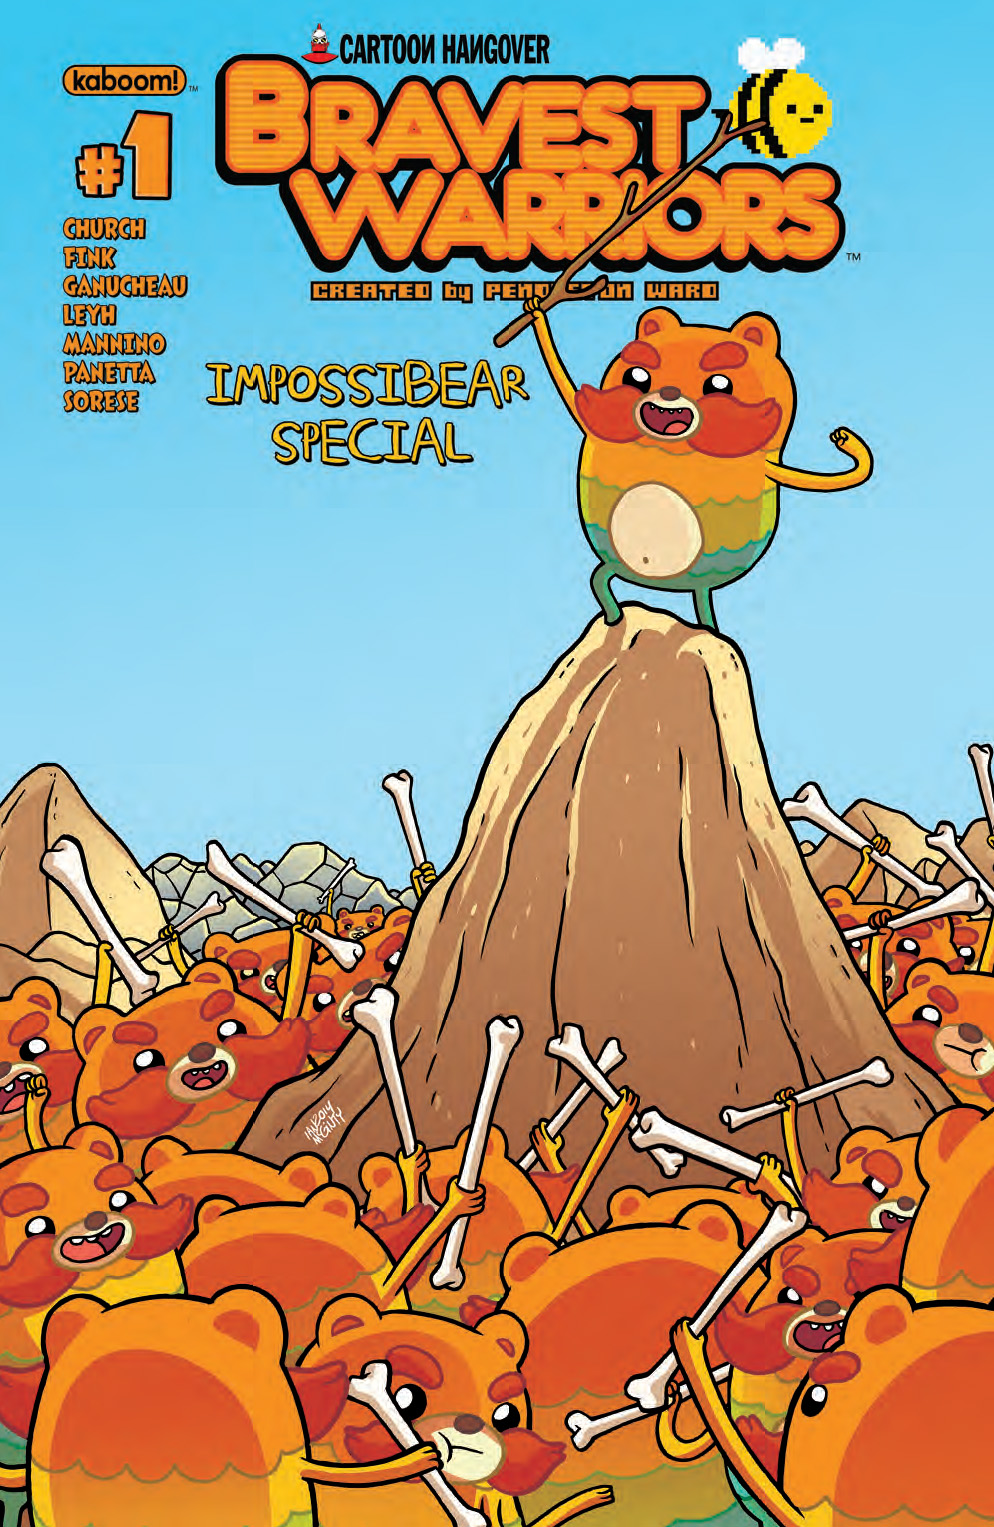 Bravest Warriors 2014 Impossibear Special Cover A